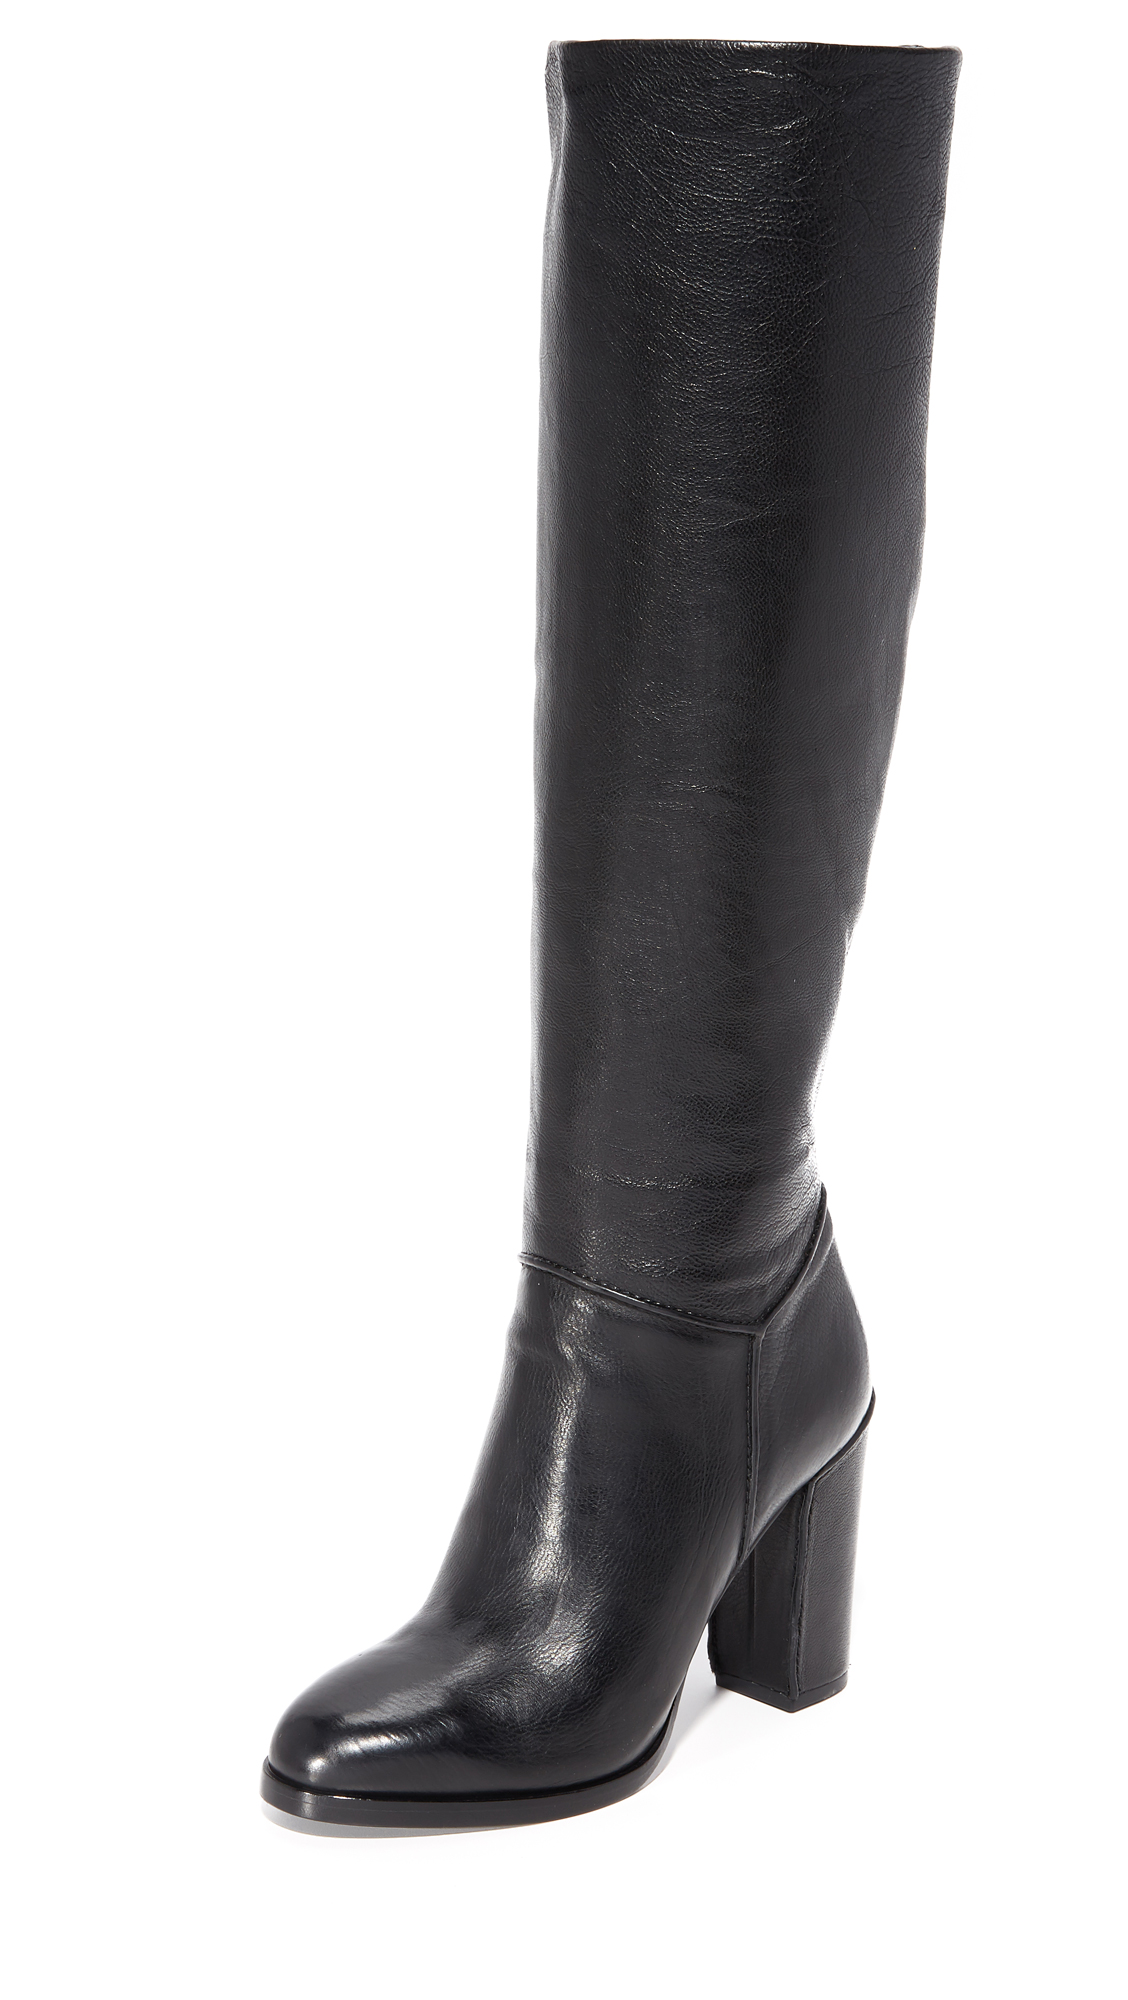 Michael Kors Collection Fern Boots - Black